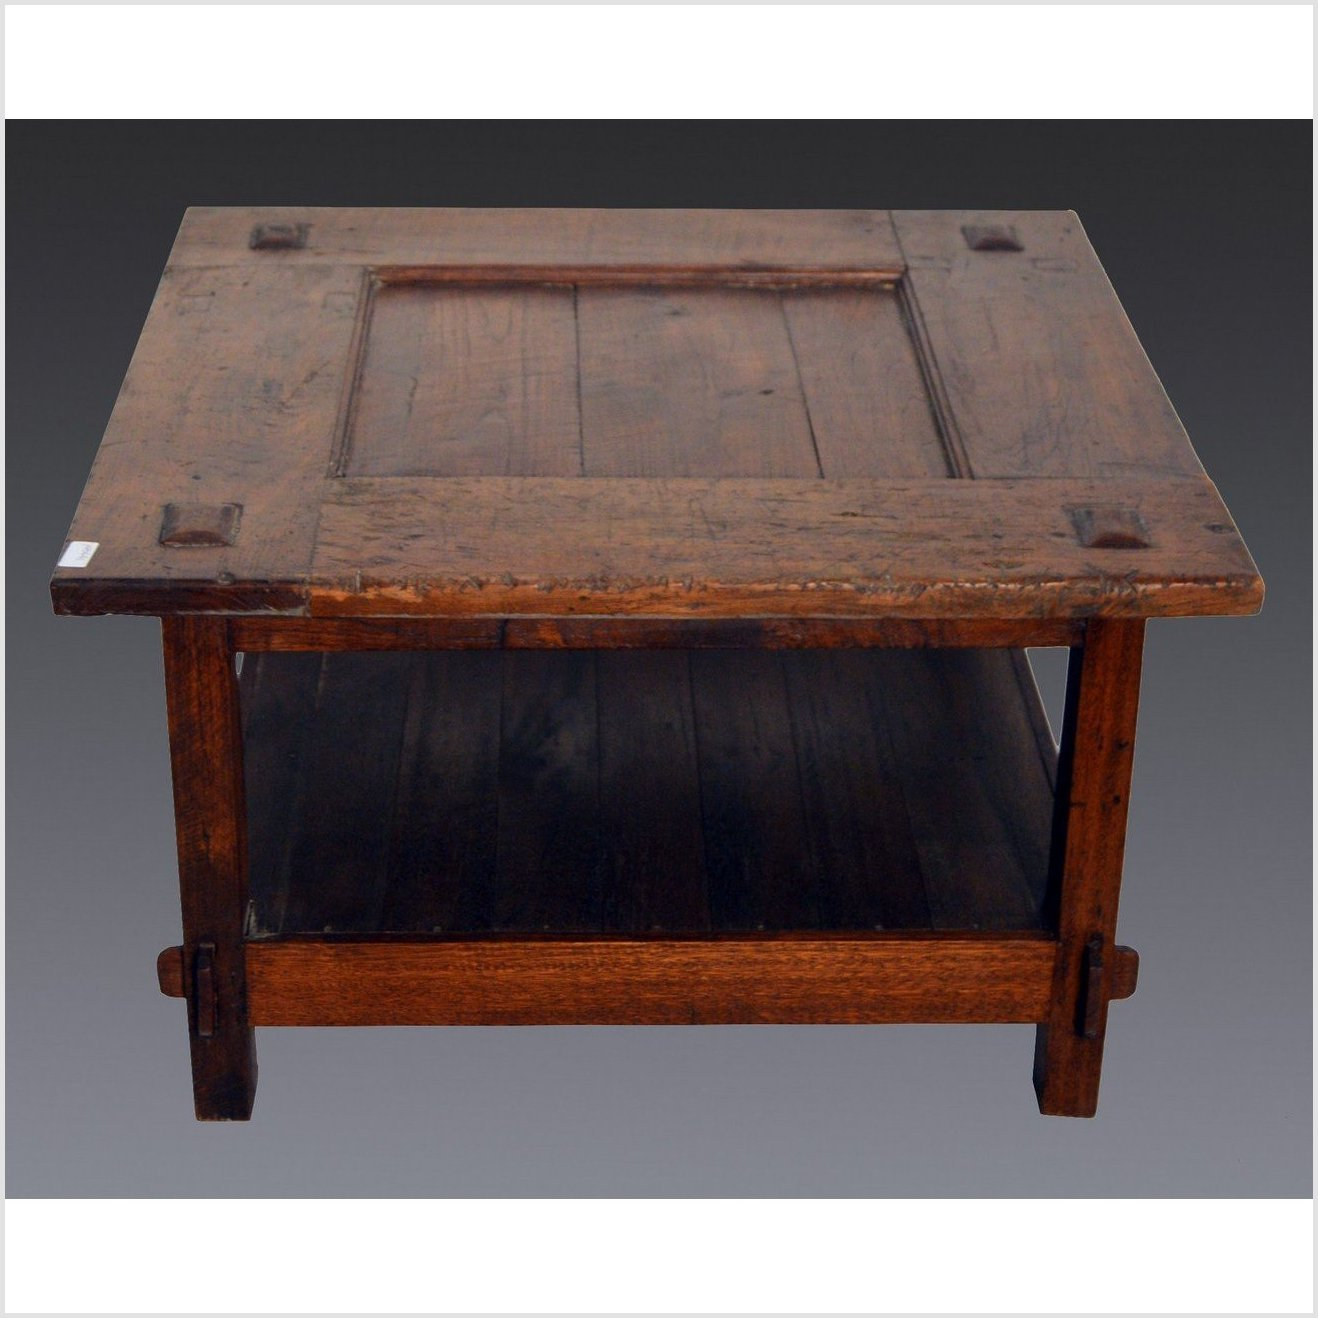 Antique Indonesian Wooden Coffee Table